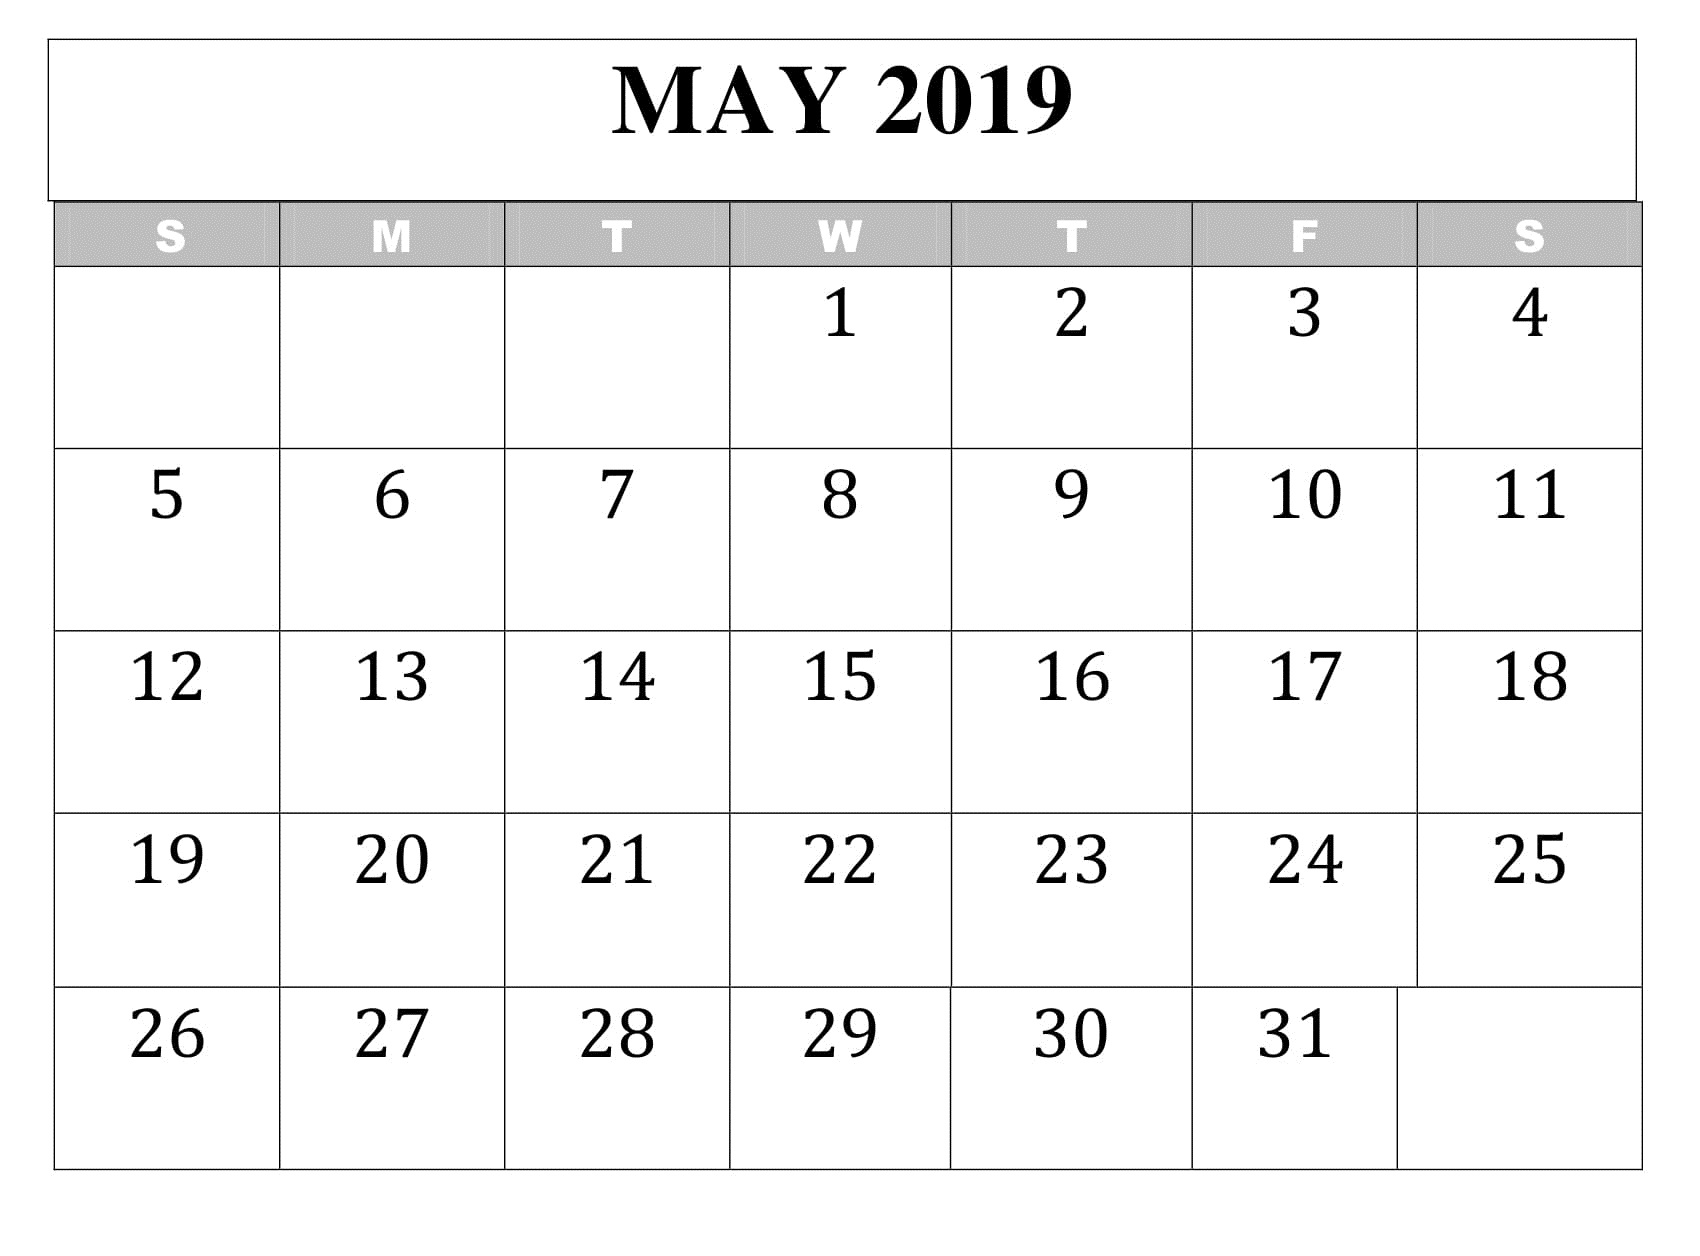 May 2019 Calendar Table Blank